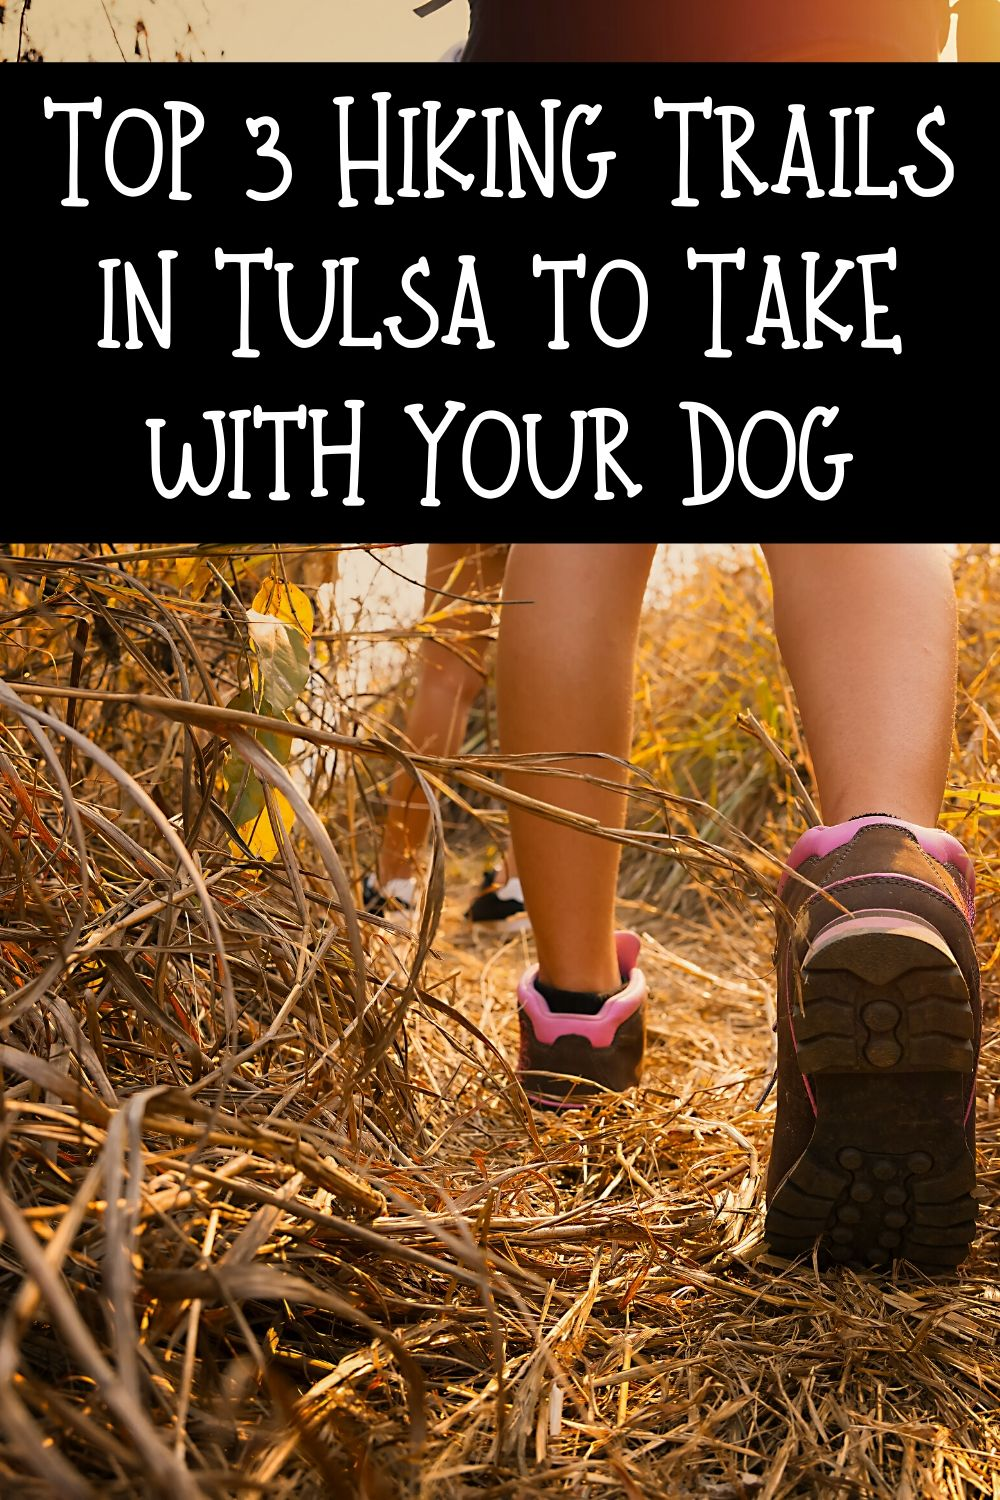 If you are a fan of Tulsa hikes and pets this is the blog for you! Check out these top 3 Tulsa hikes that you can take with your dog! Hiking with your dog is fun, it's great exercise for you both, and it's beautiful since we have some gorgeous scenery here in Tulsa.